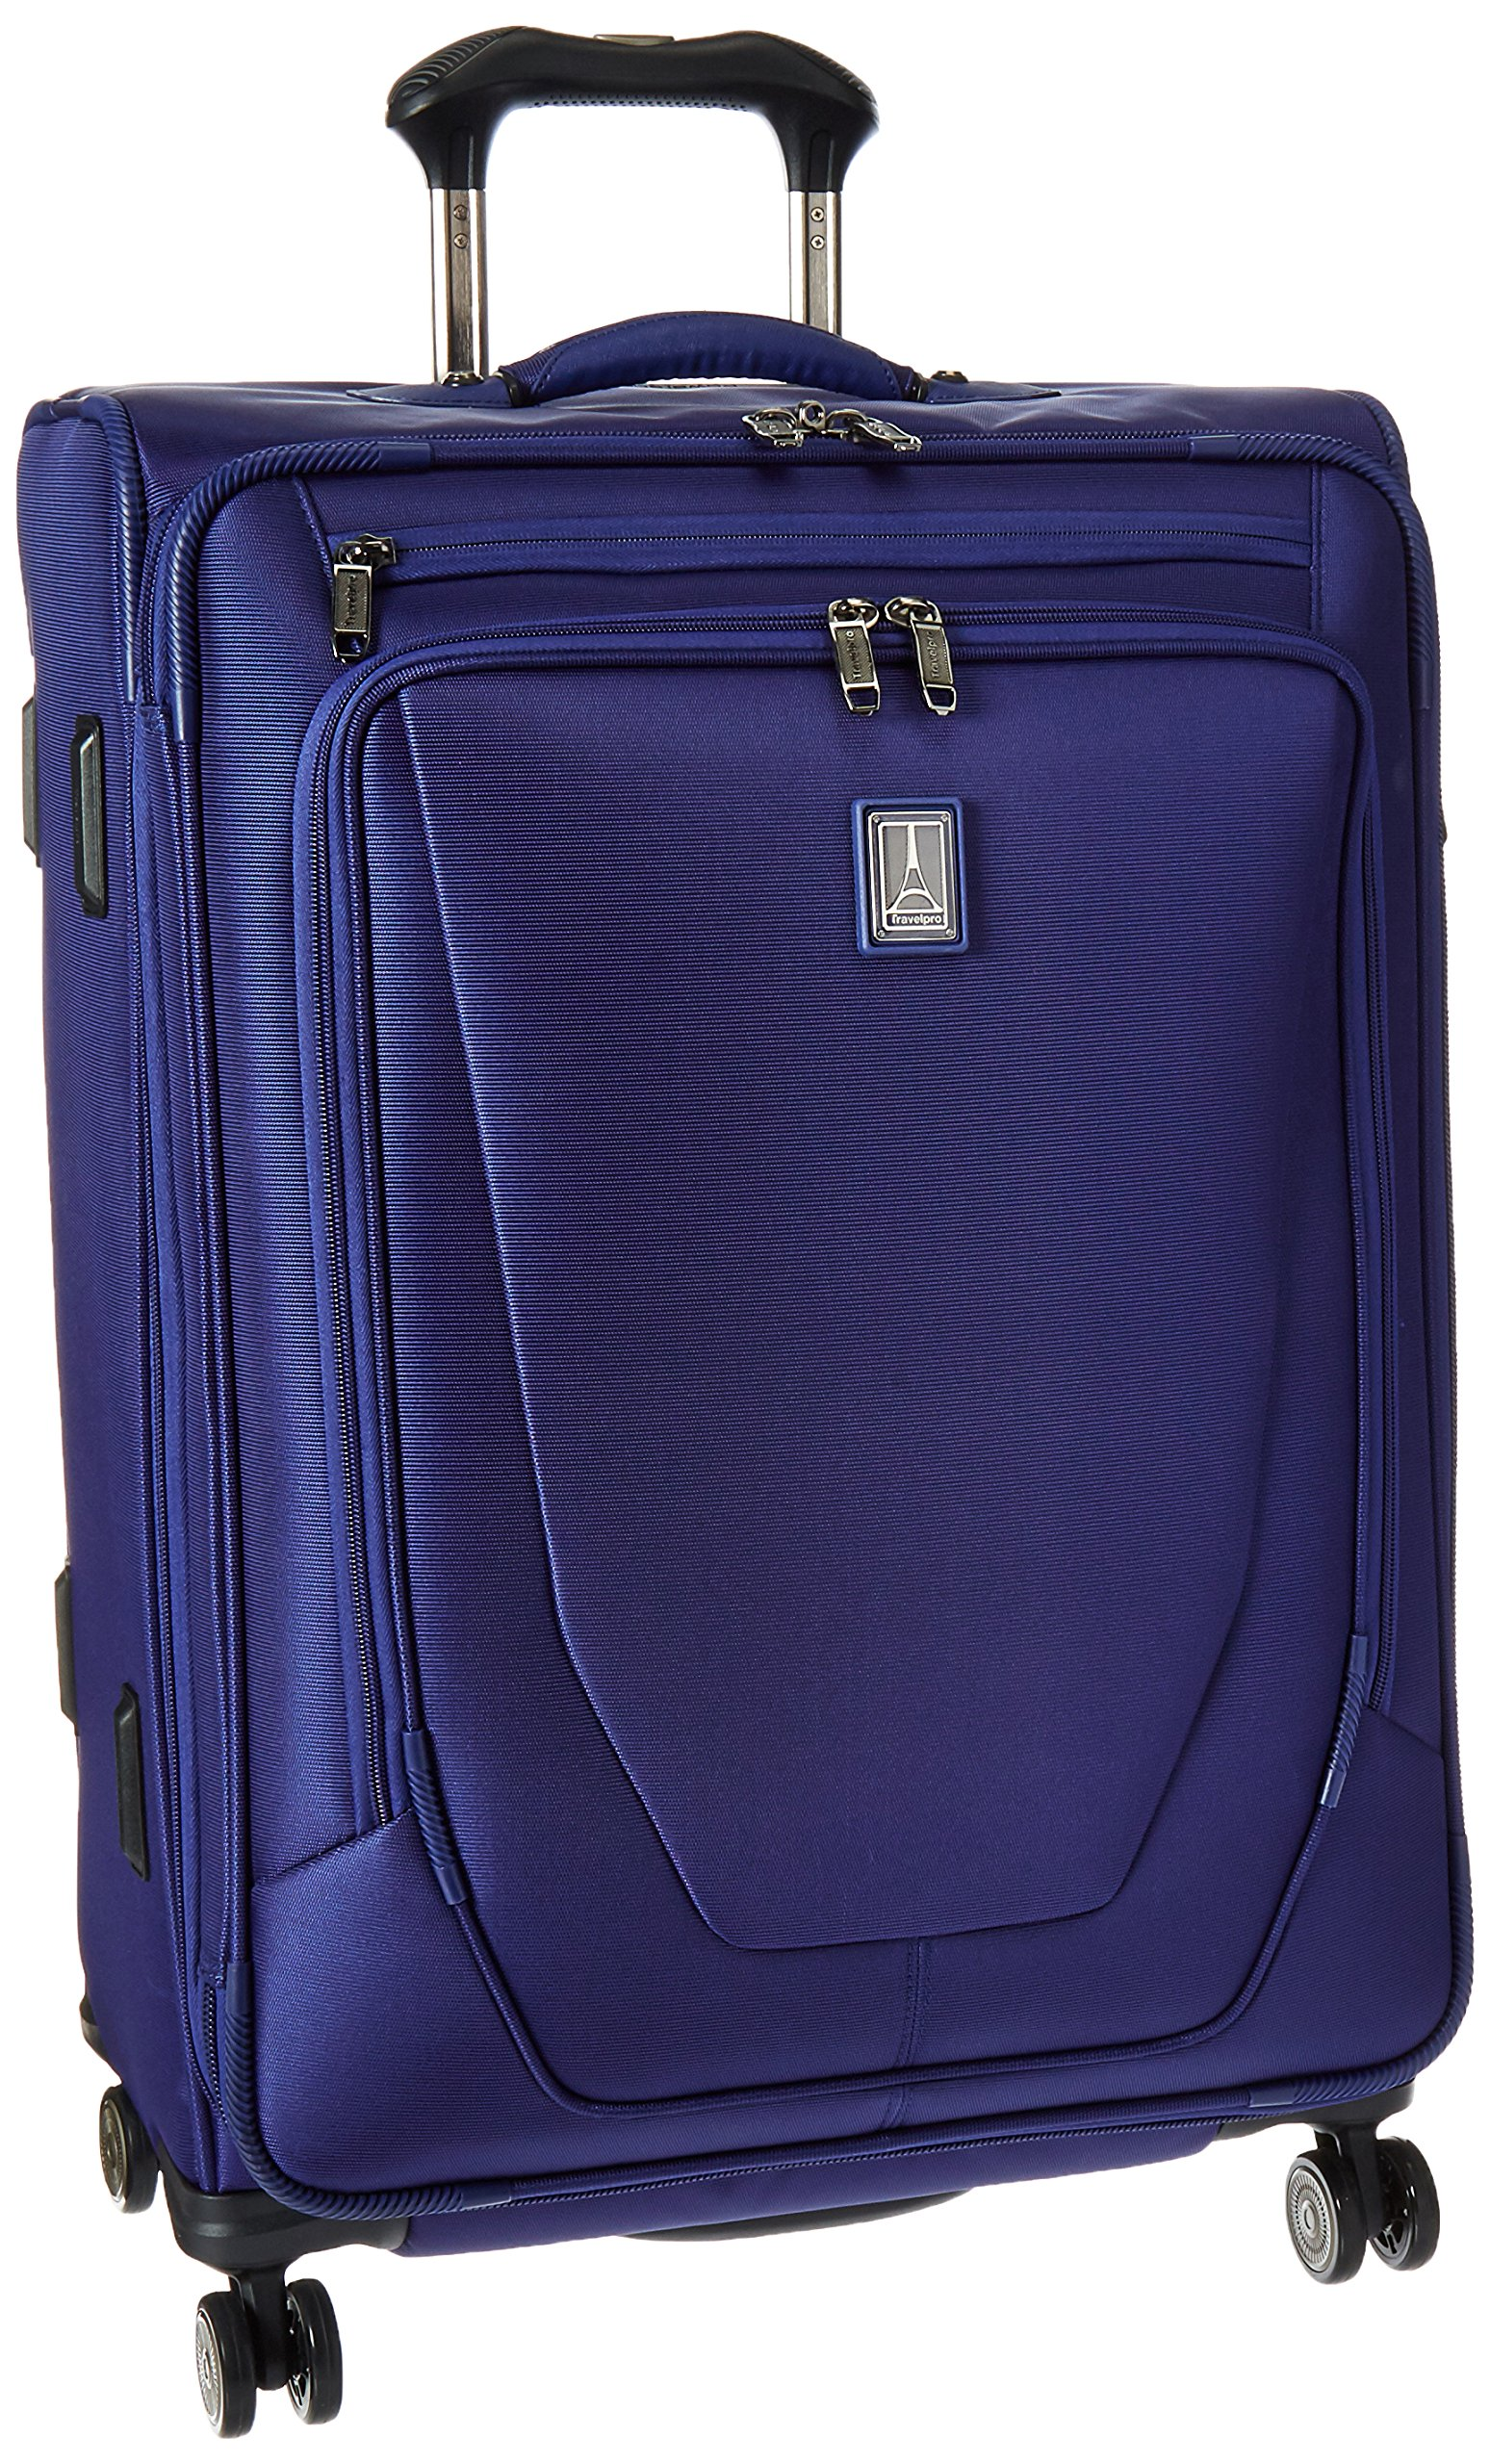 Travelpro Crew 11 Expandable Spinner Suiter Suitcase, Indigo